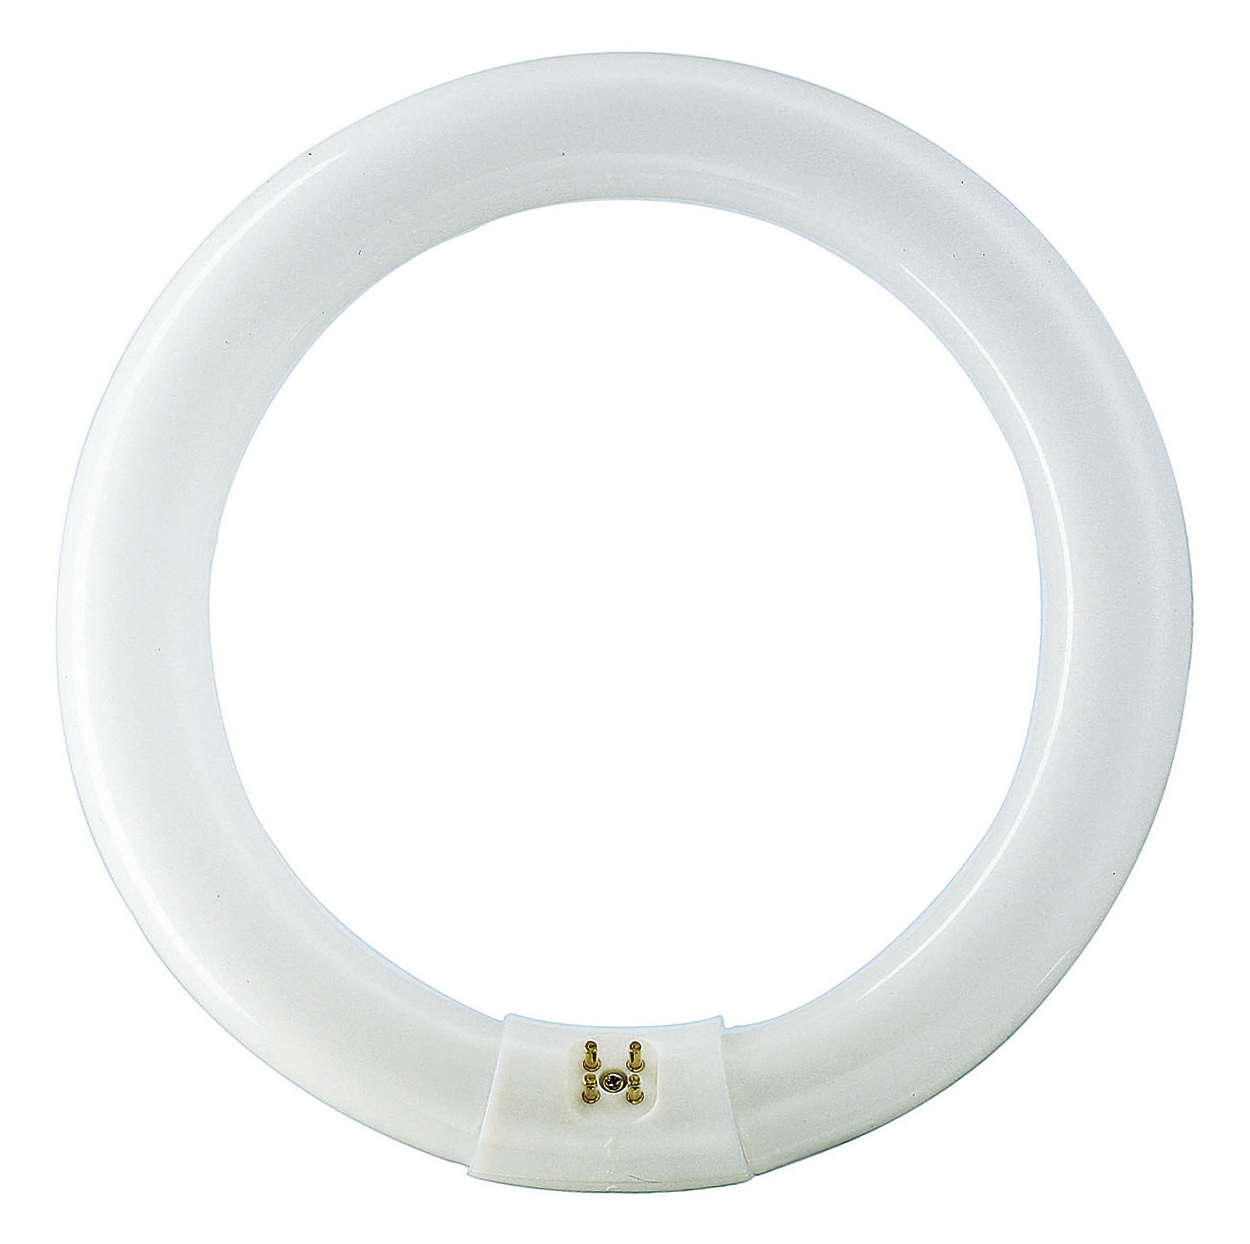 Circular shaped, basic fluorescent lighting